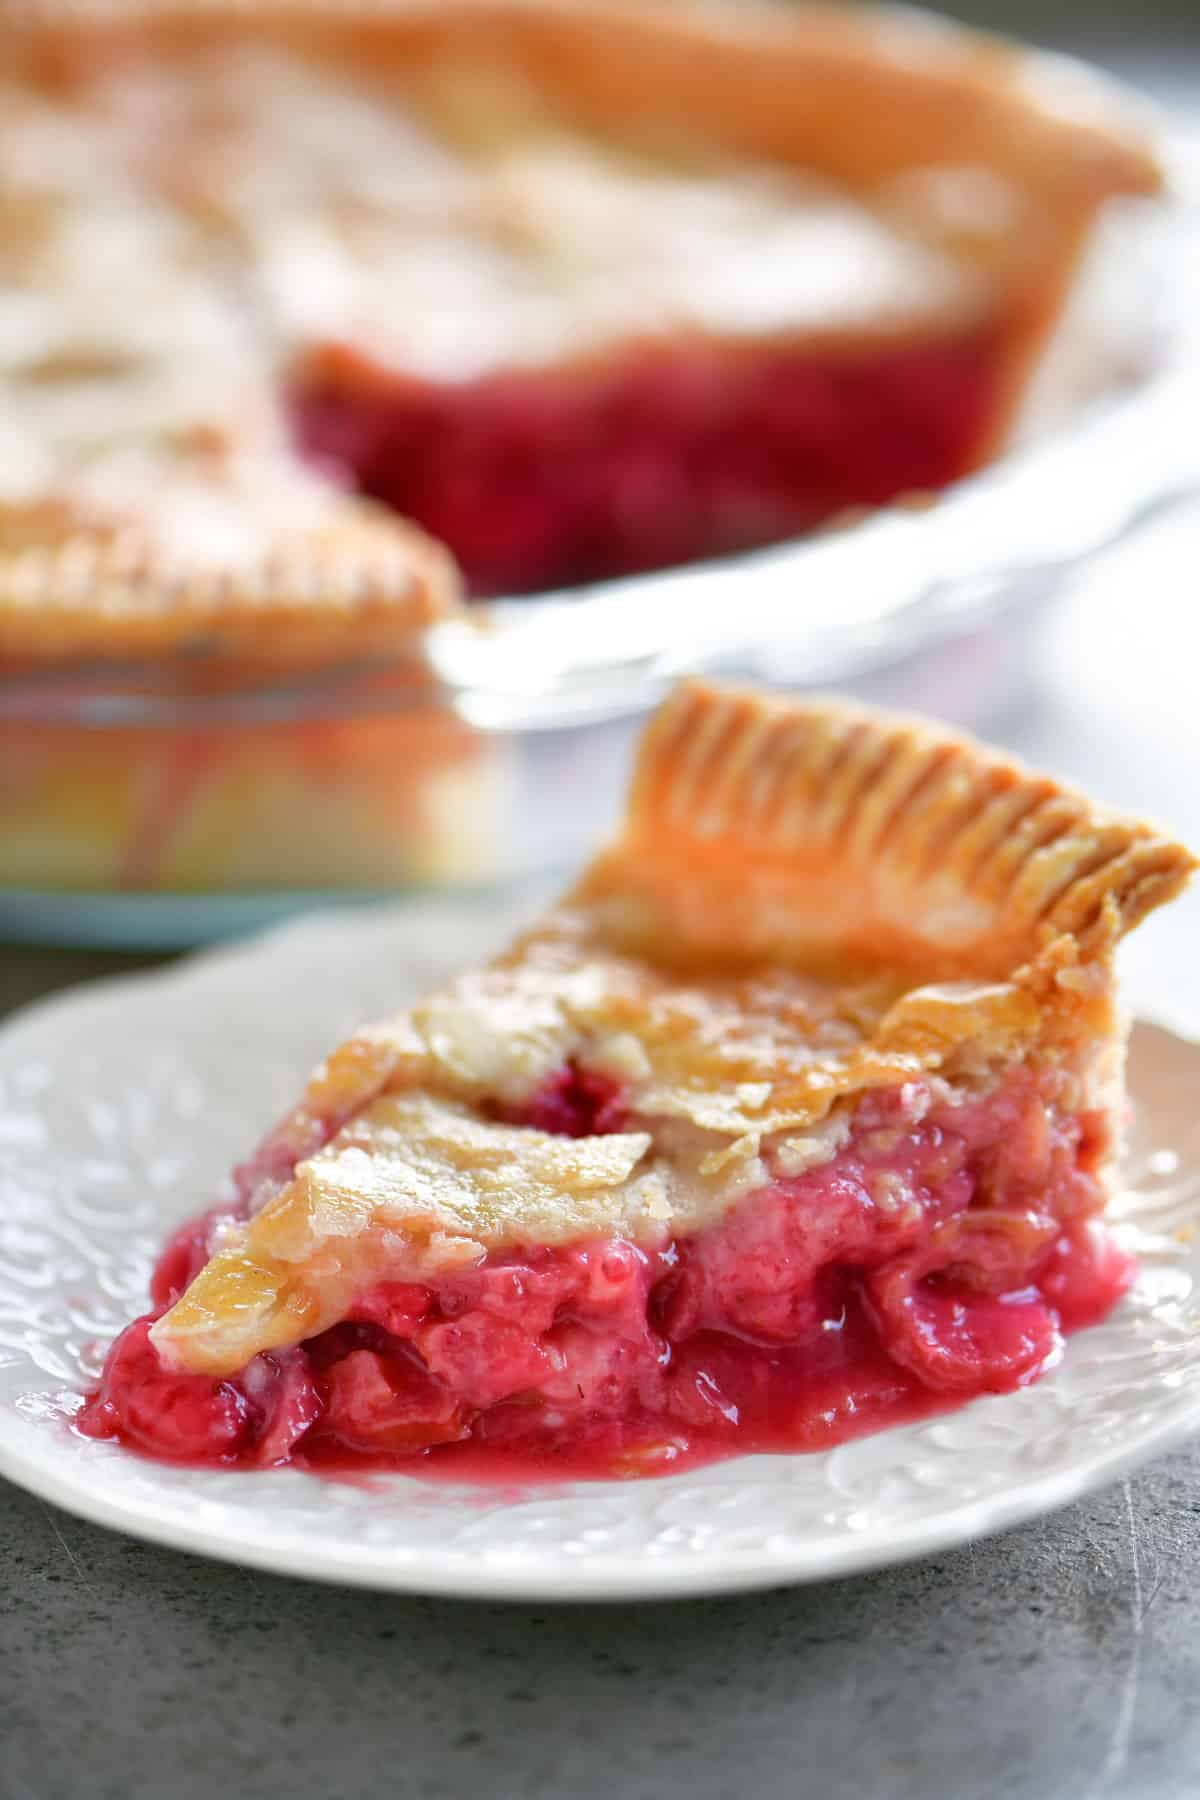 slice of strawberry rhubarb pie on white plate